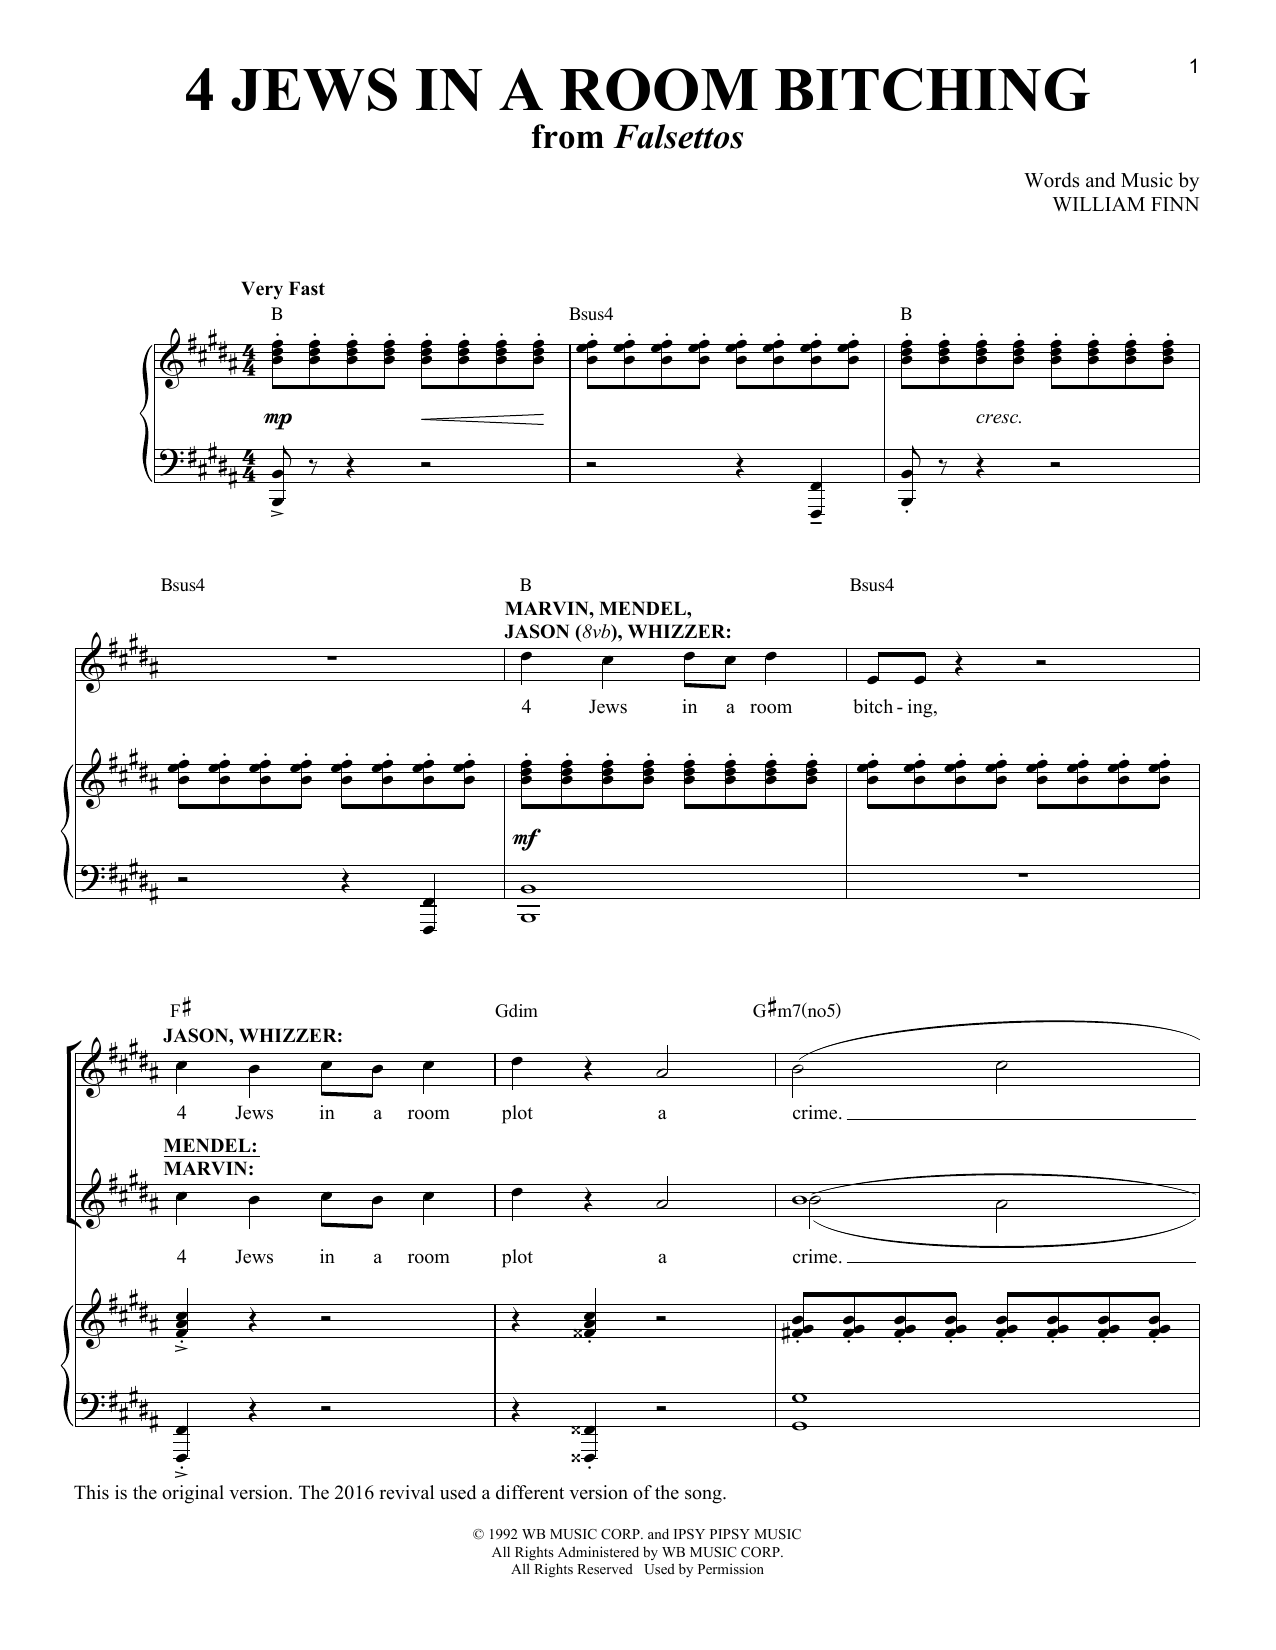 William Finn 4 Jews In A Room Bitching sheet music notes and chords. Download Printable PDF.